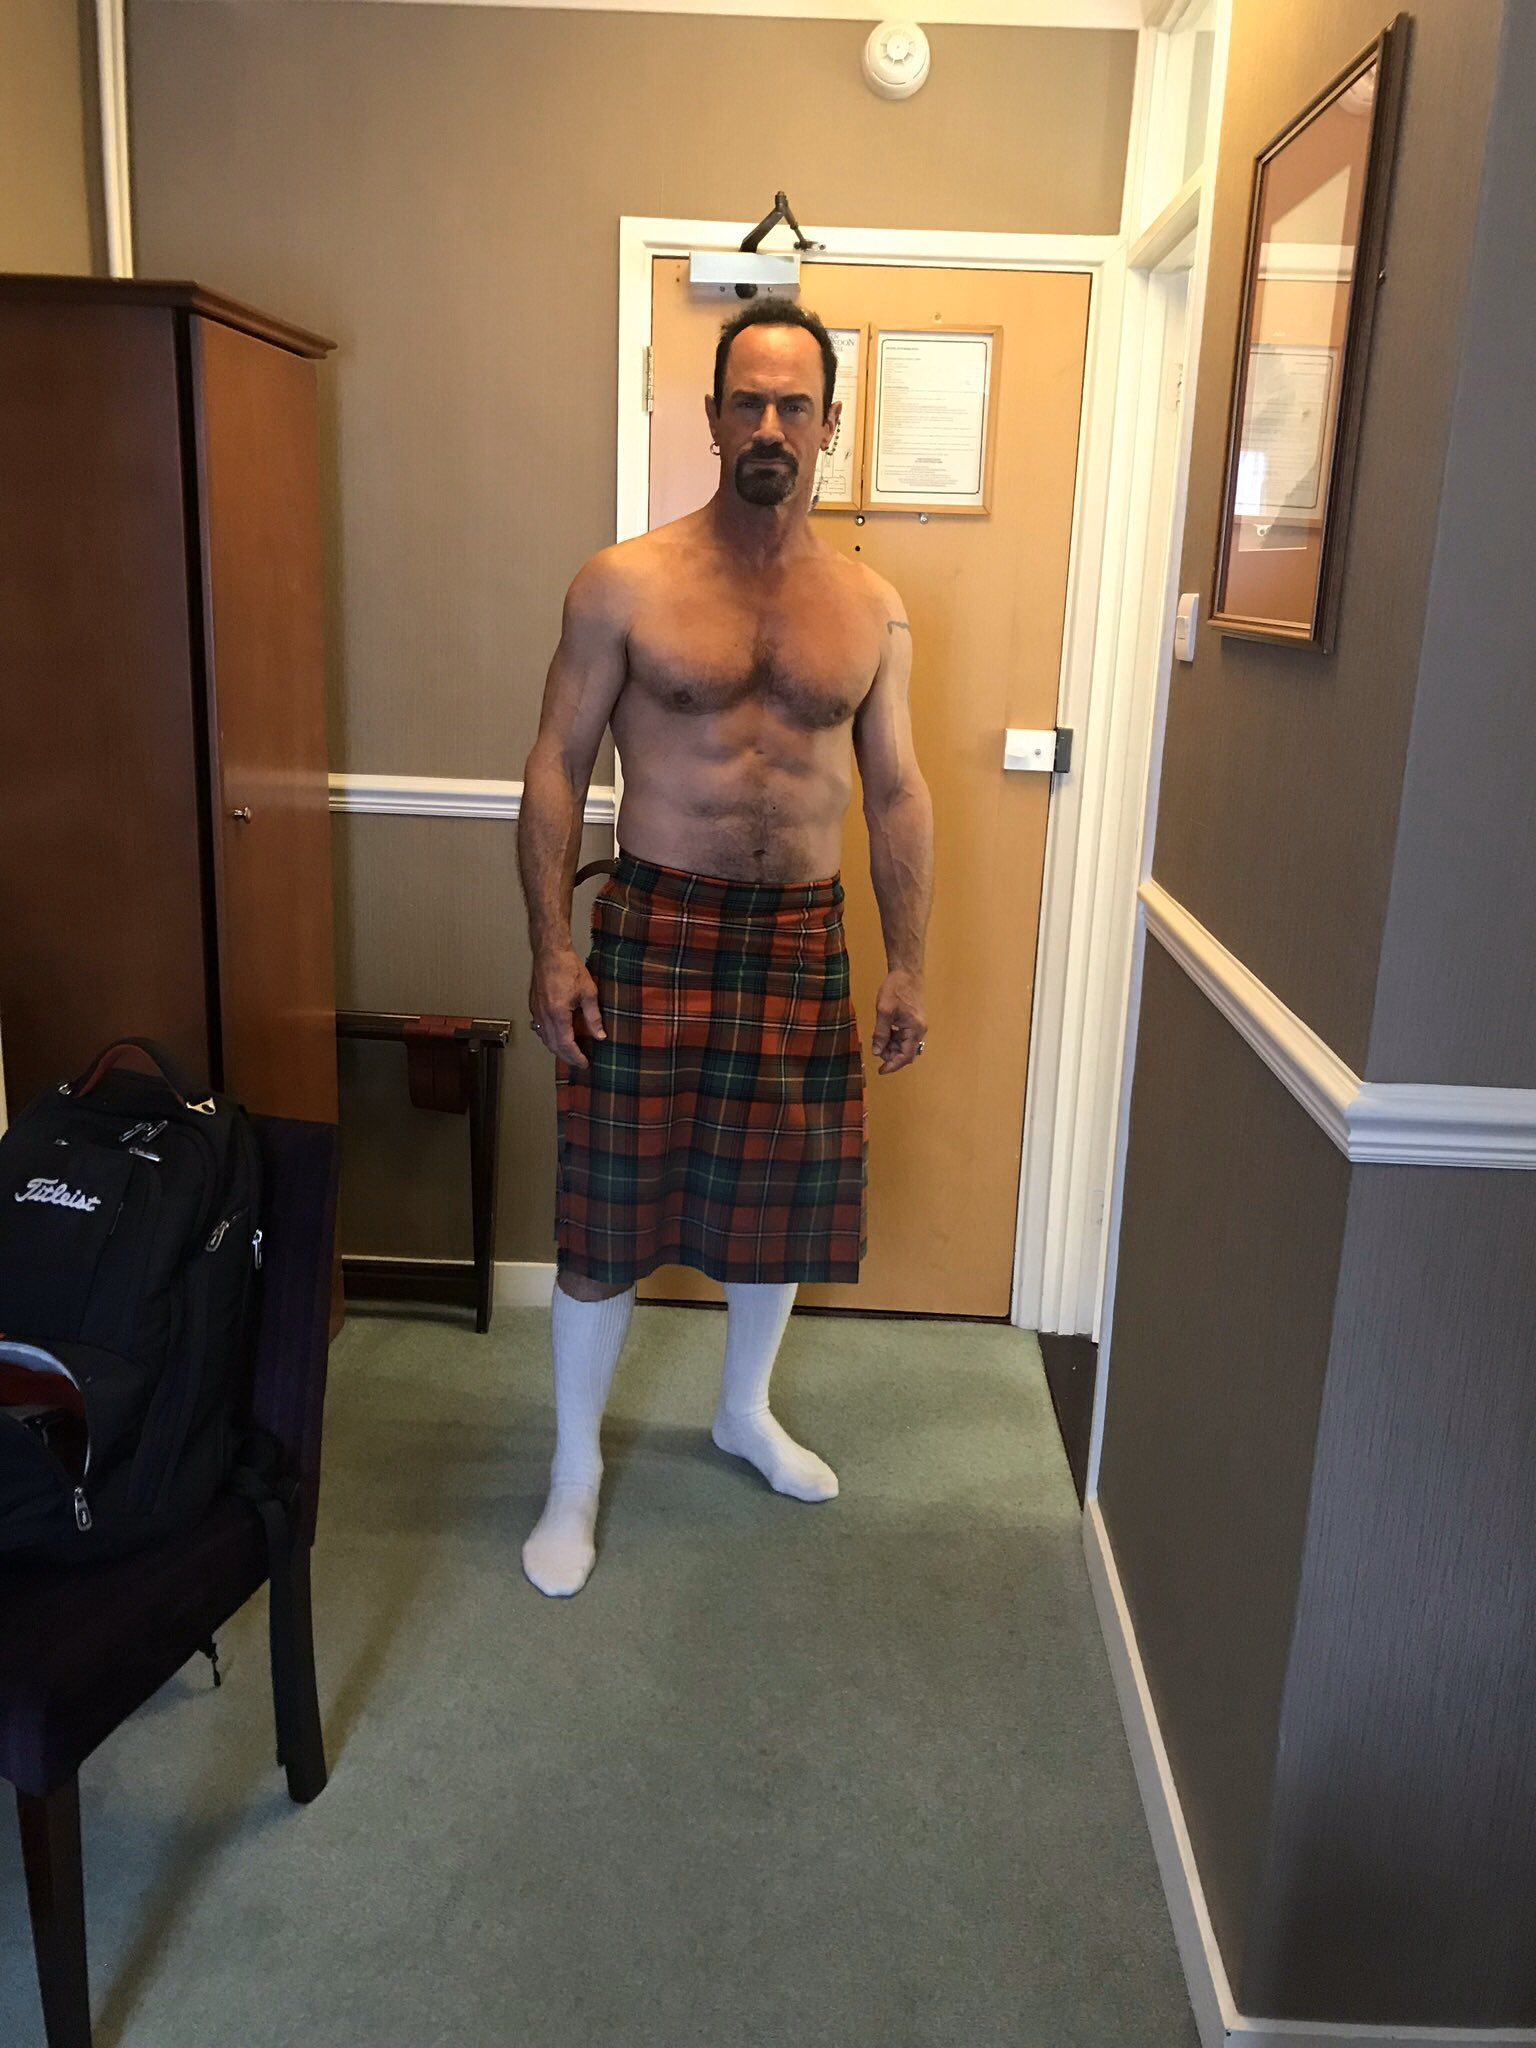 Law & Order' Star Christopher Meloni Just Showed Off Abs at 58